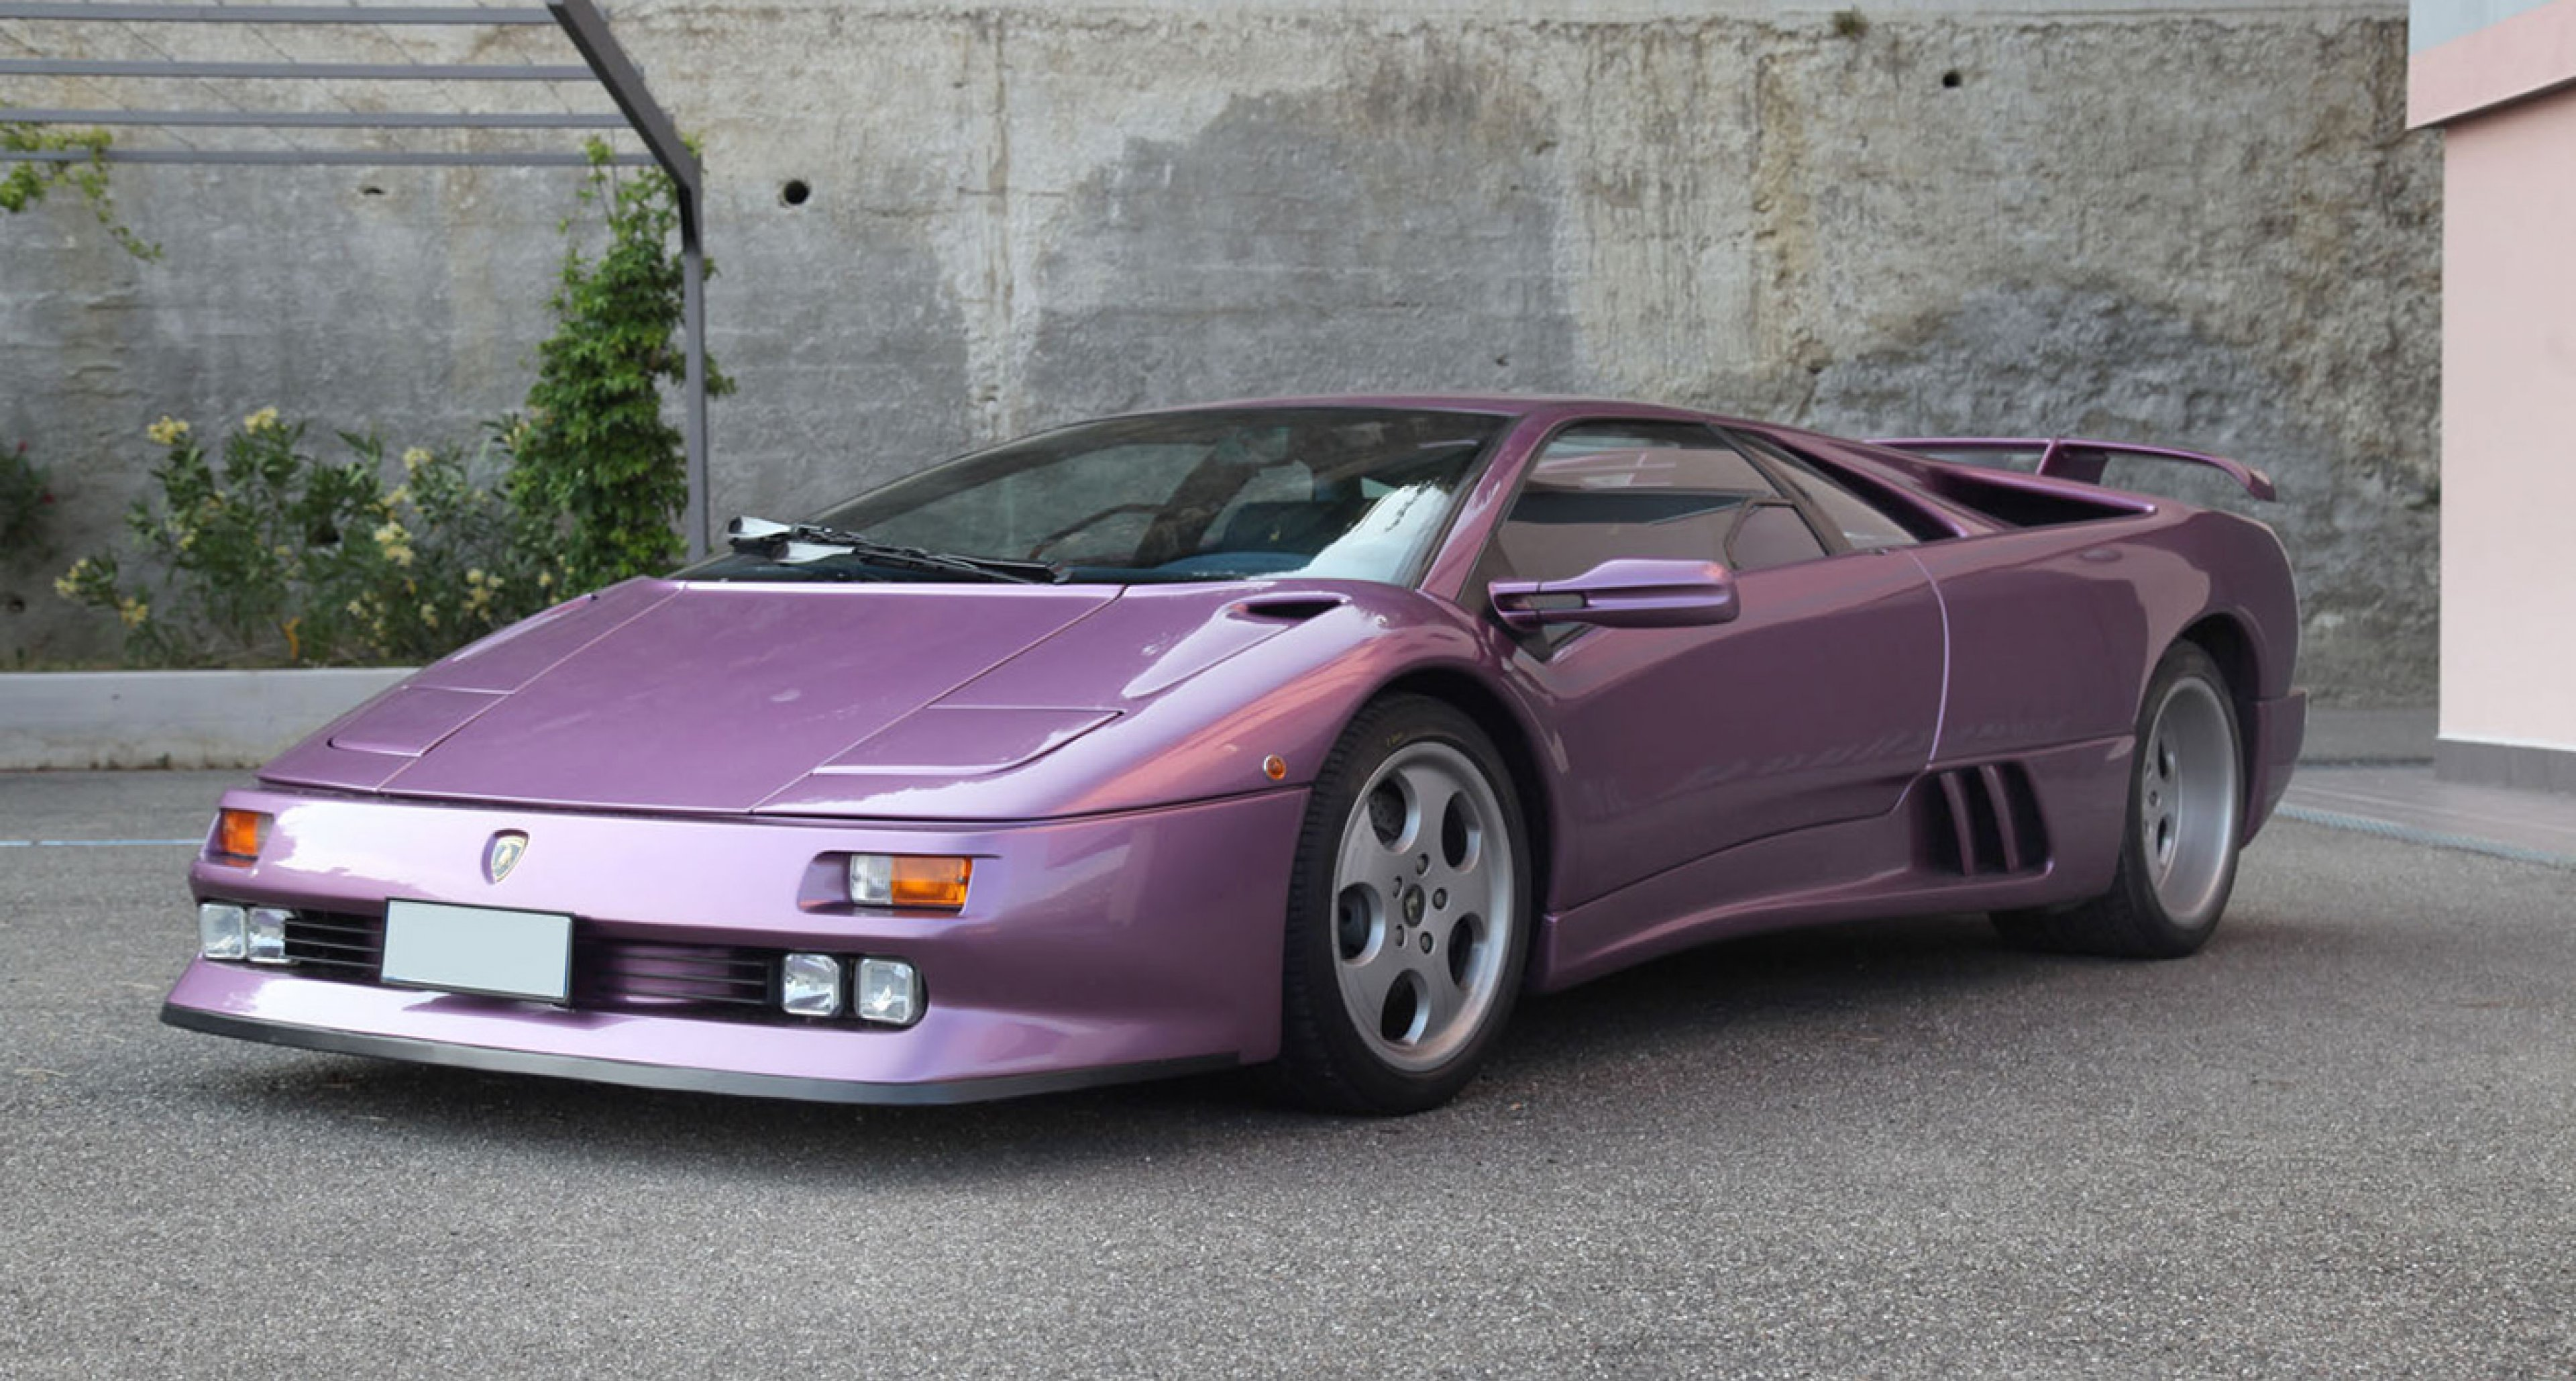 Lamborghini Diablo SE 30th Anniversario to be sold at Coys' 'Legende et Passion' auction in Monaco, 9 May 2014